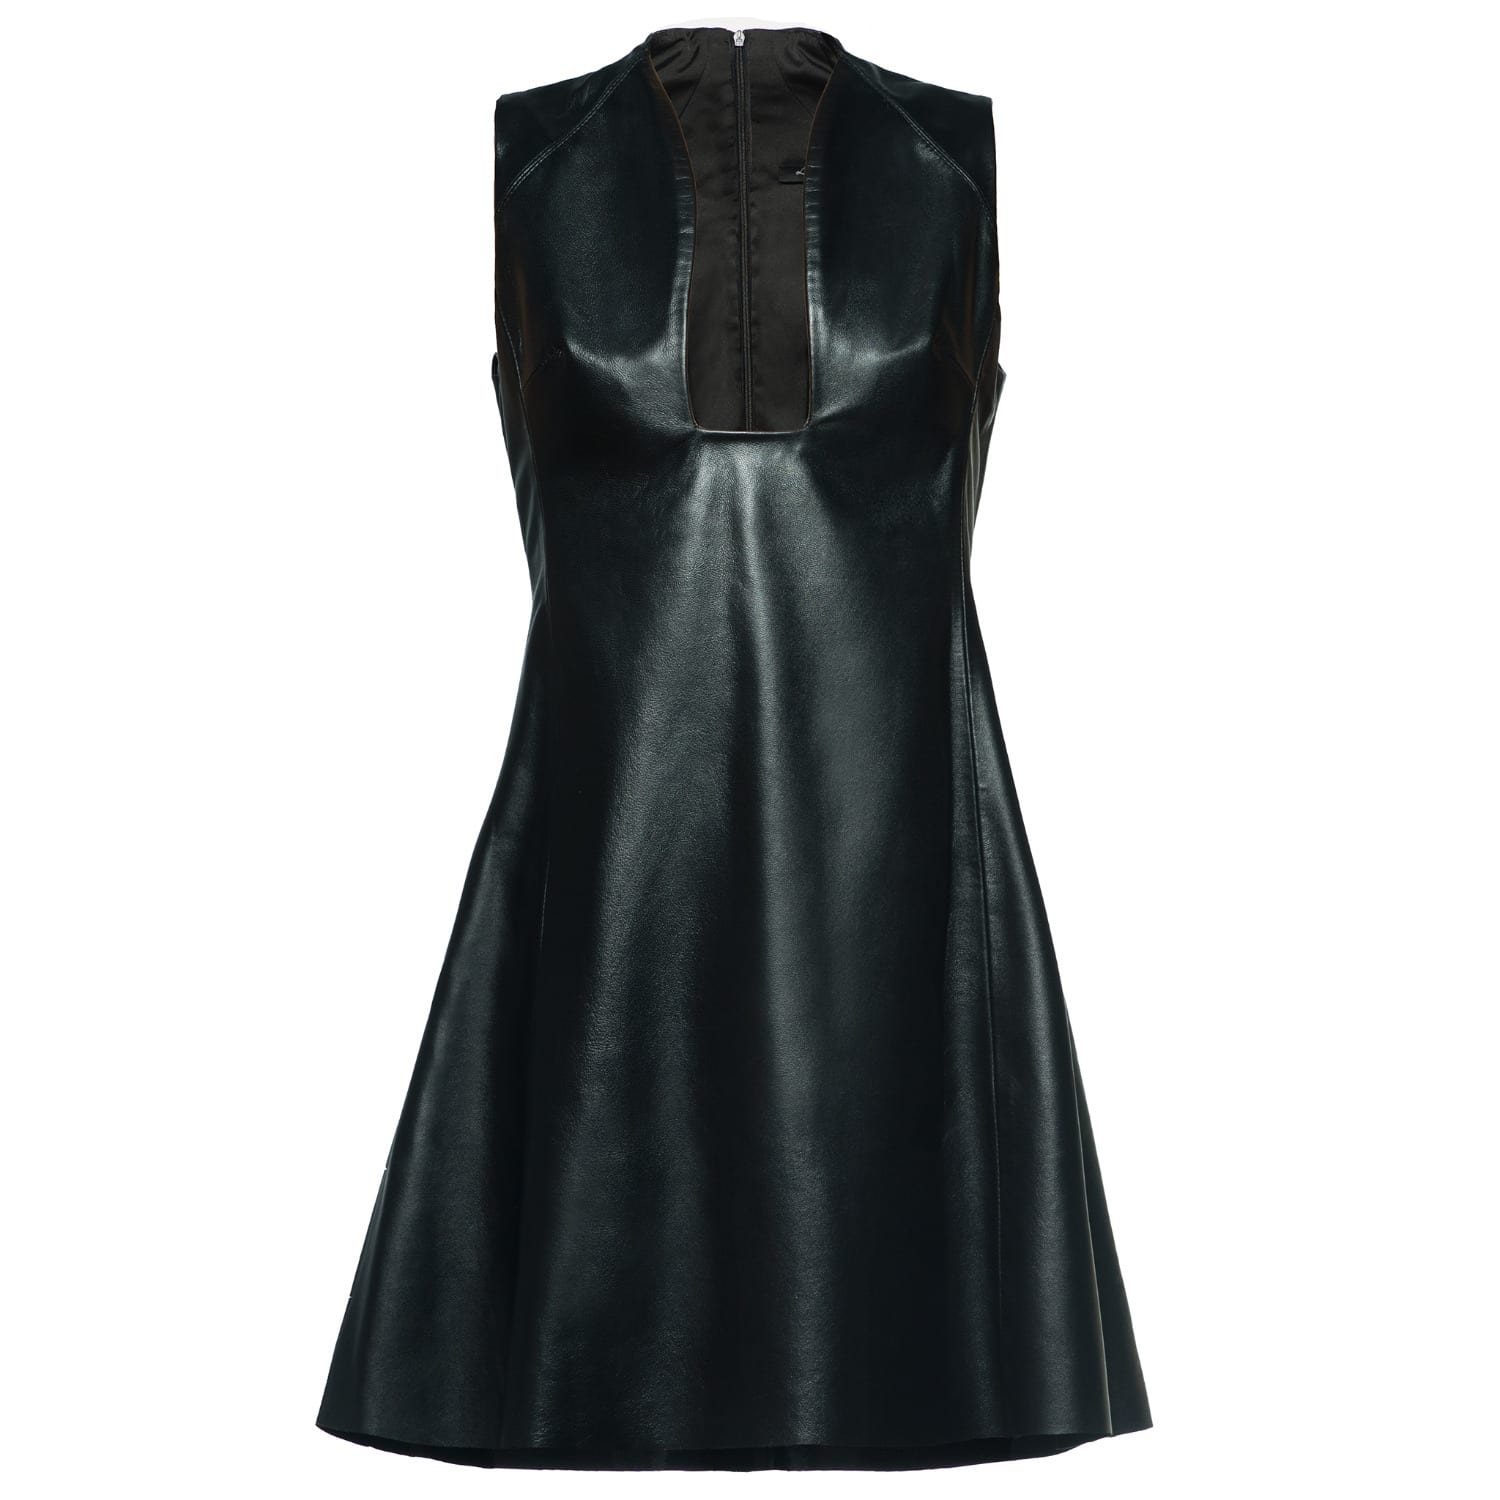 8a1c21a54ba Black Leather Mini Dress image